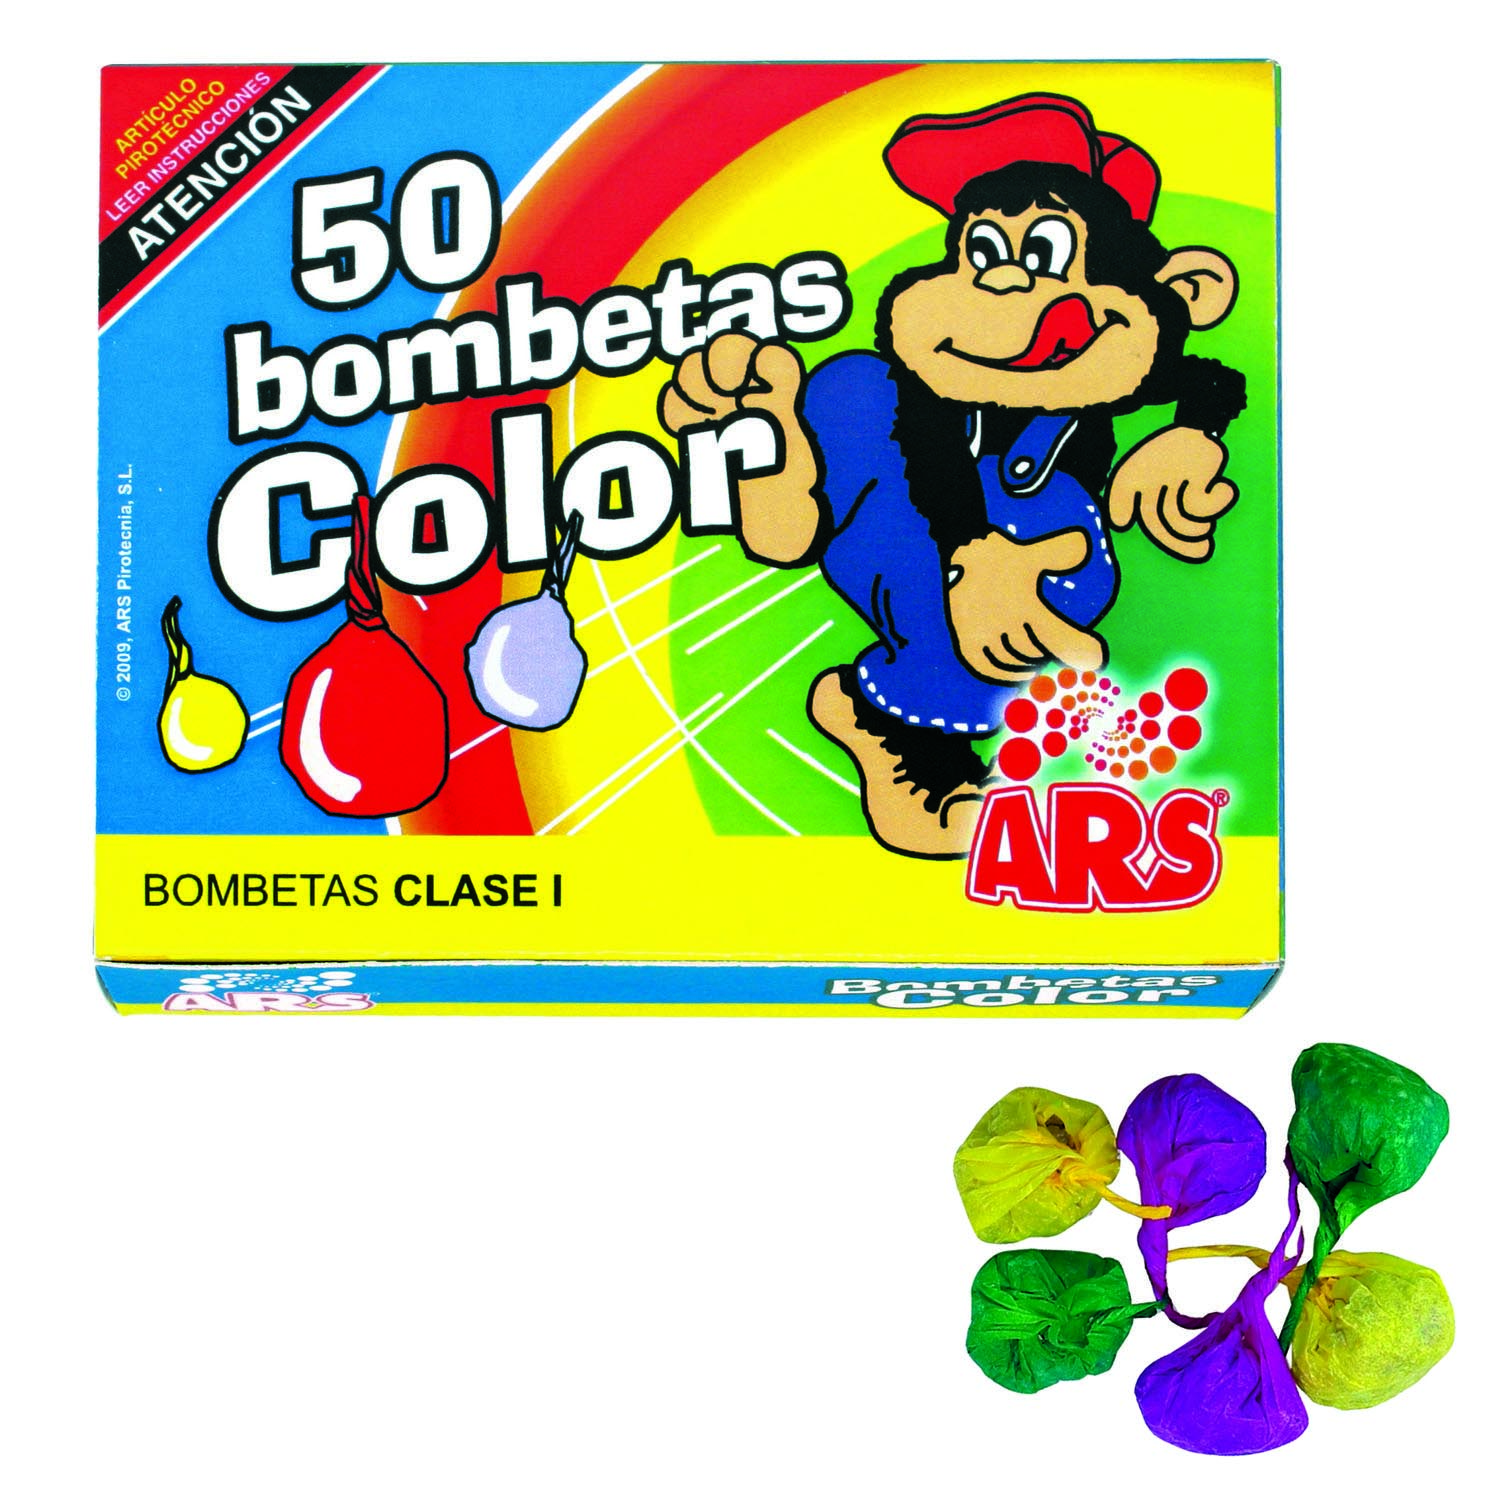 Cebolletas 50 SUPER